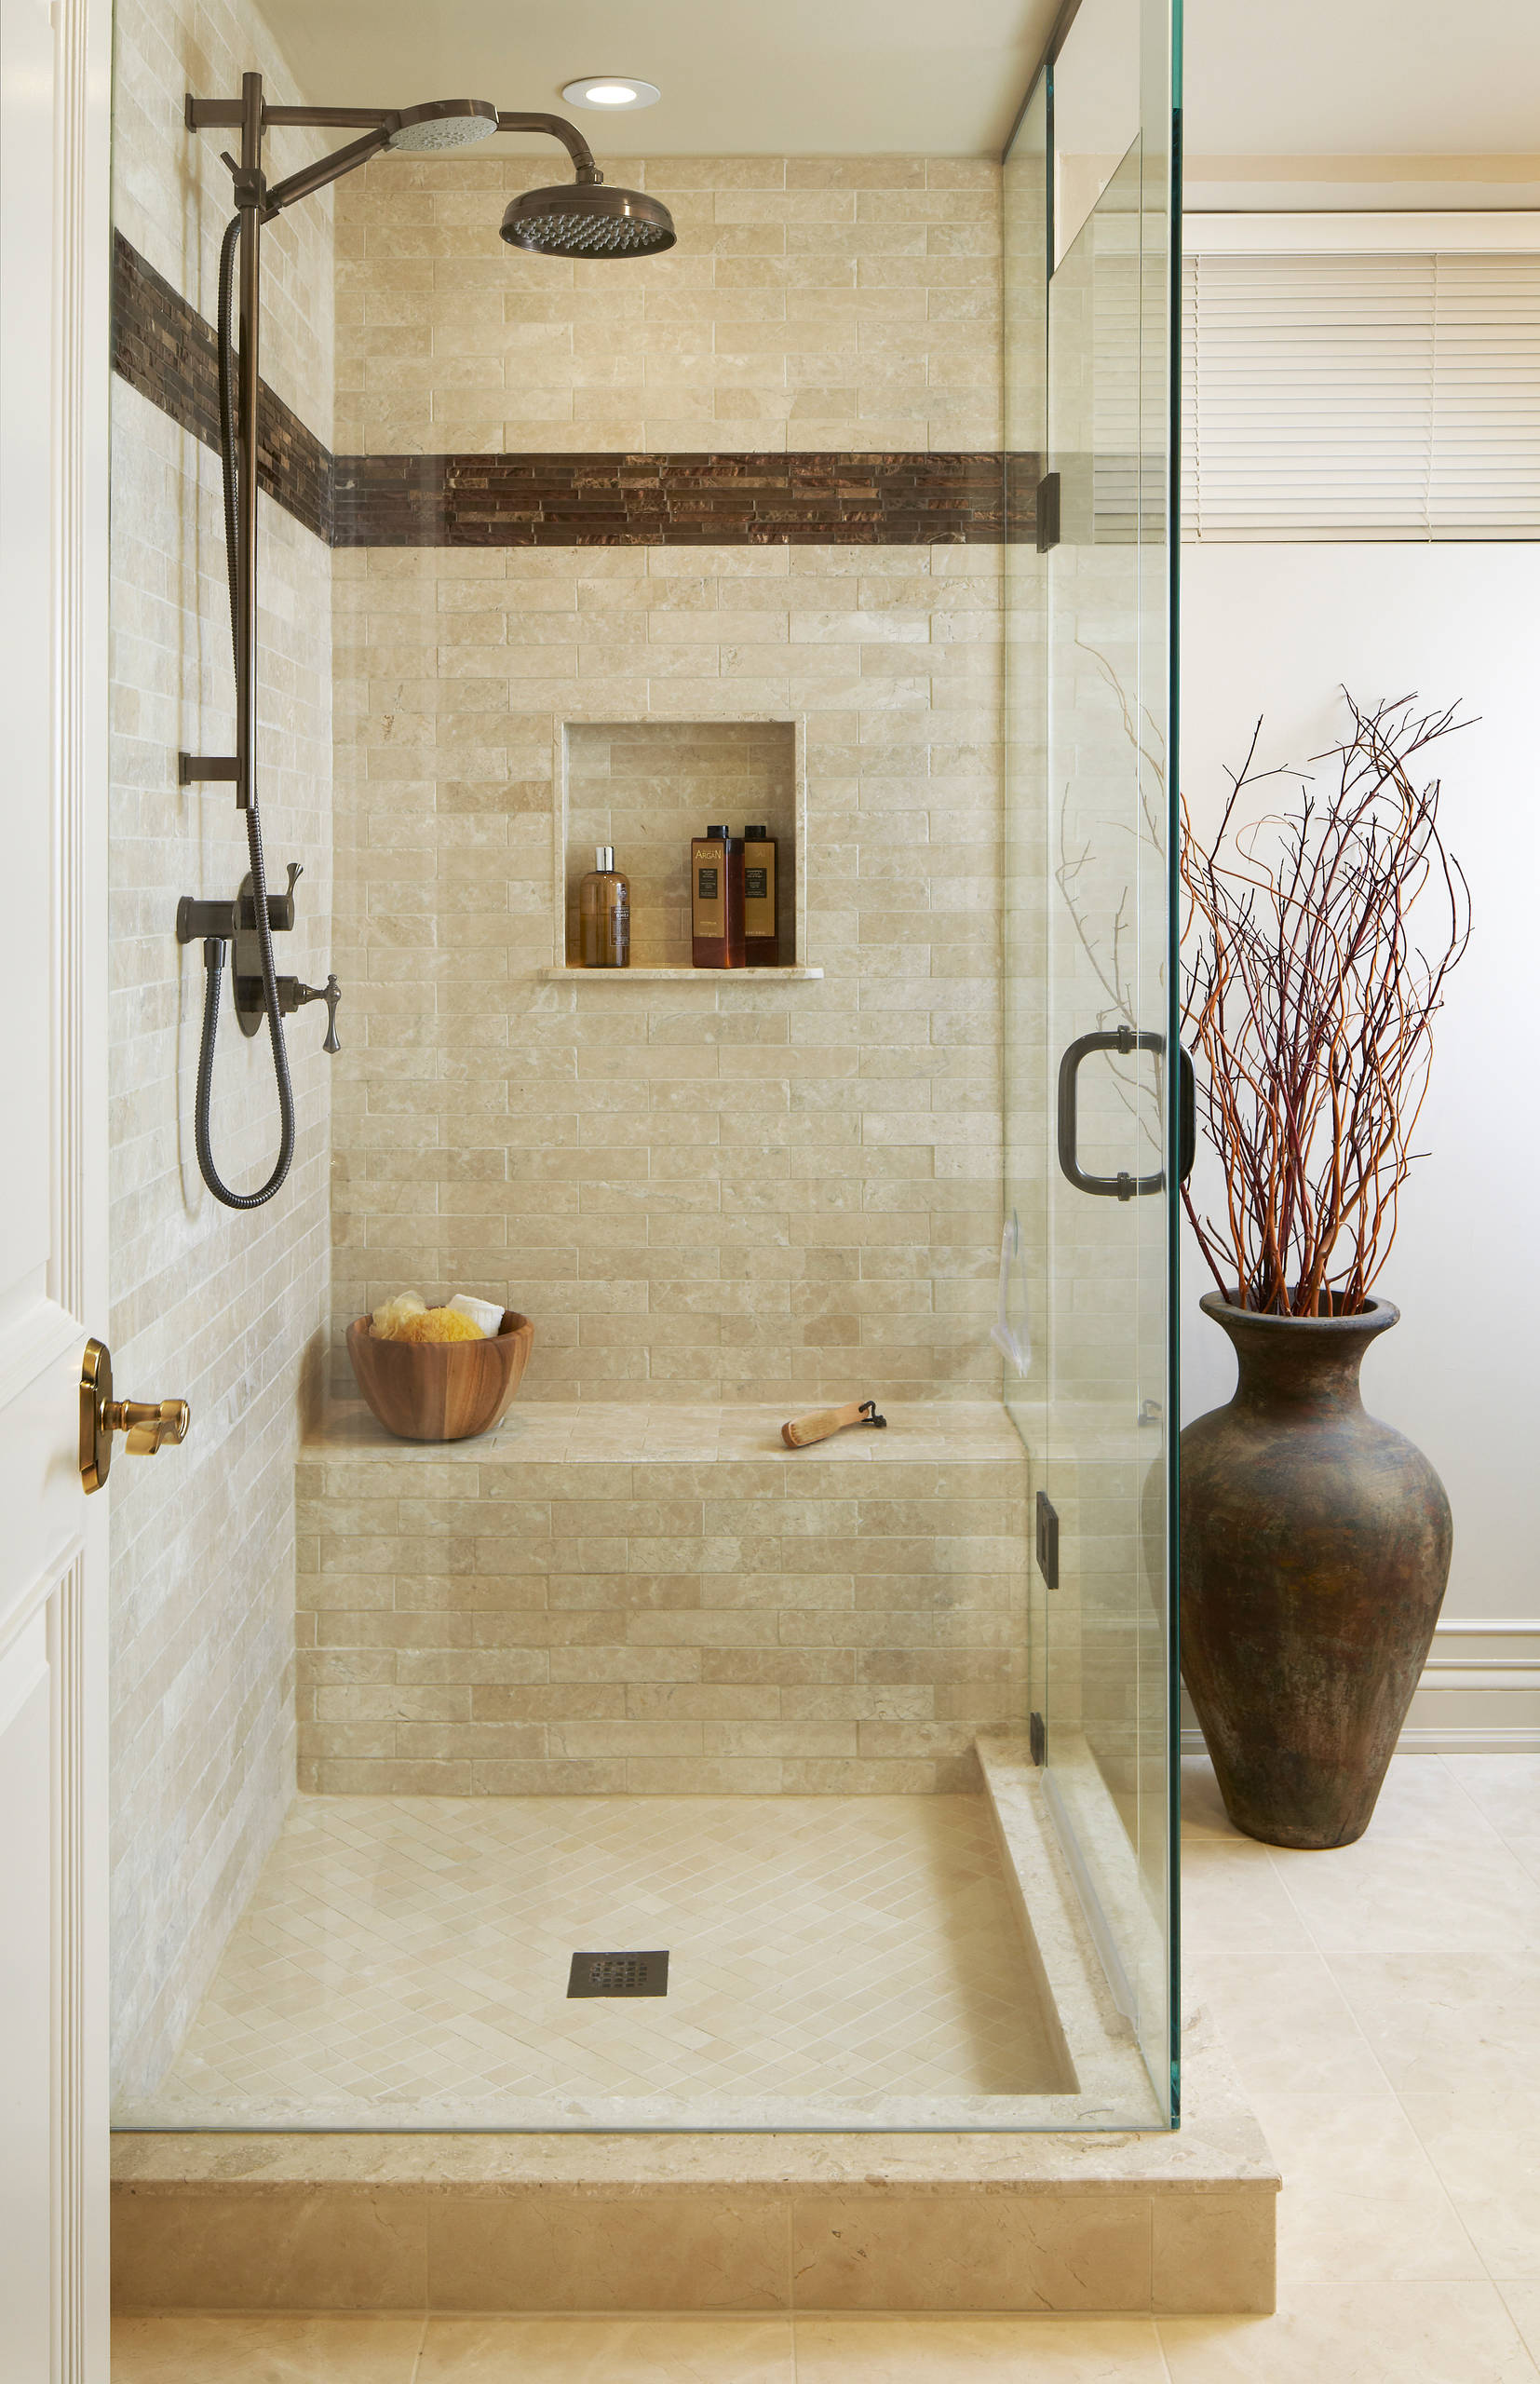 75 Beautiful Beige Tile Bathroom Pictures Ideas March 2021 Houzz